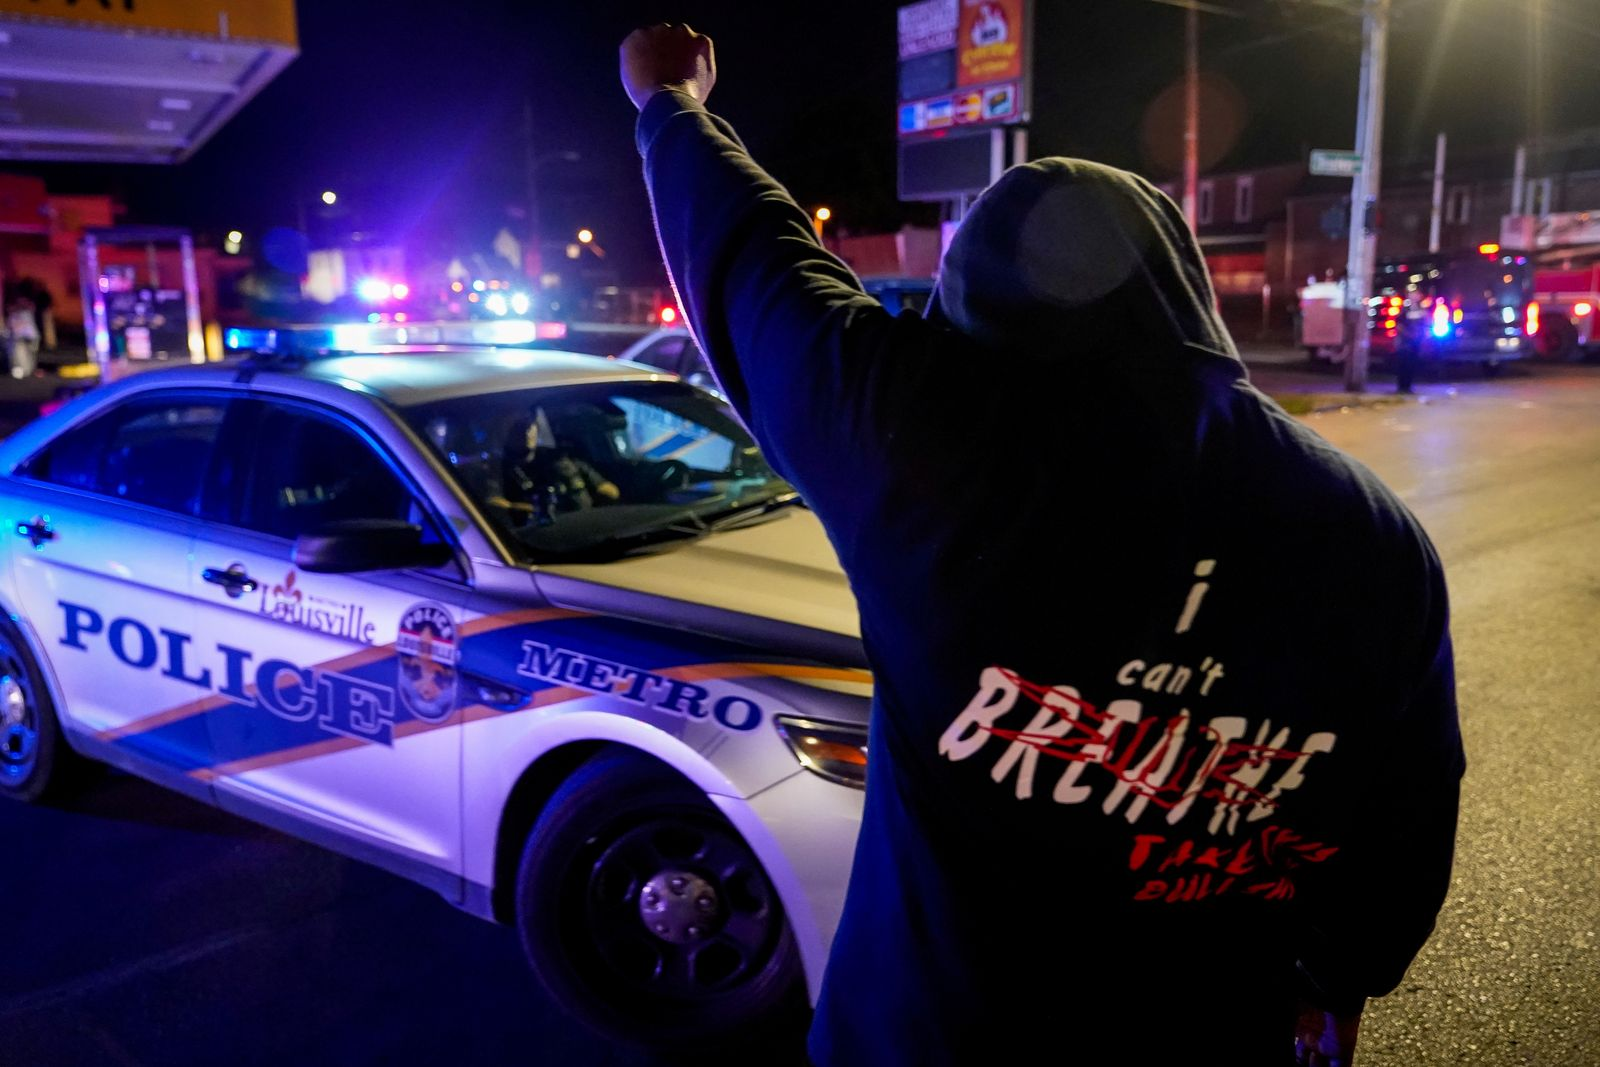 FILE PHOTO: Protests in Louisville following the death of Breonna Taylor